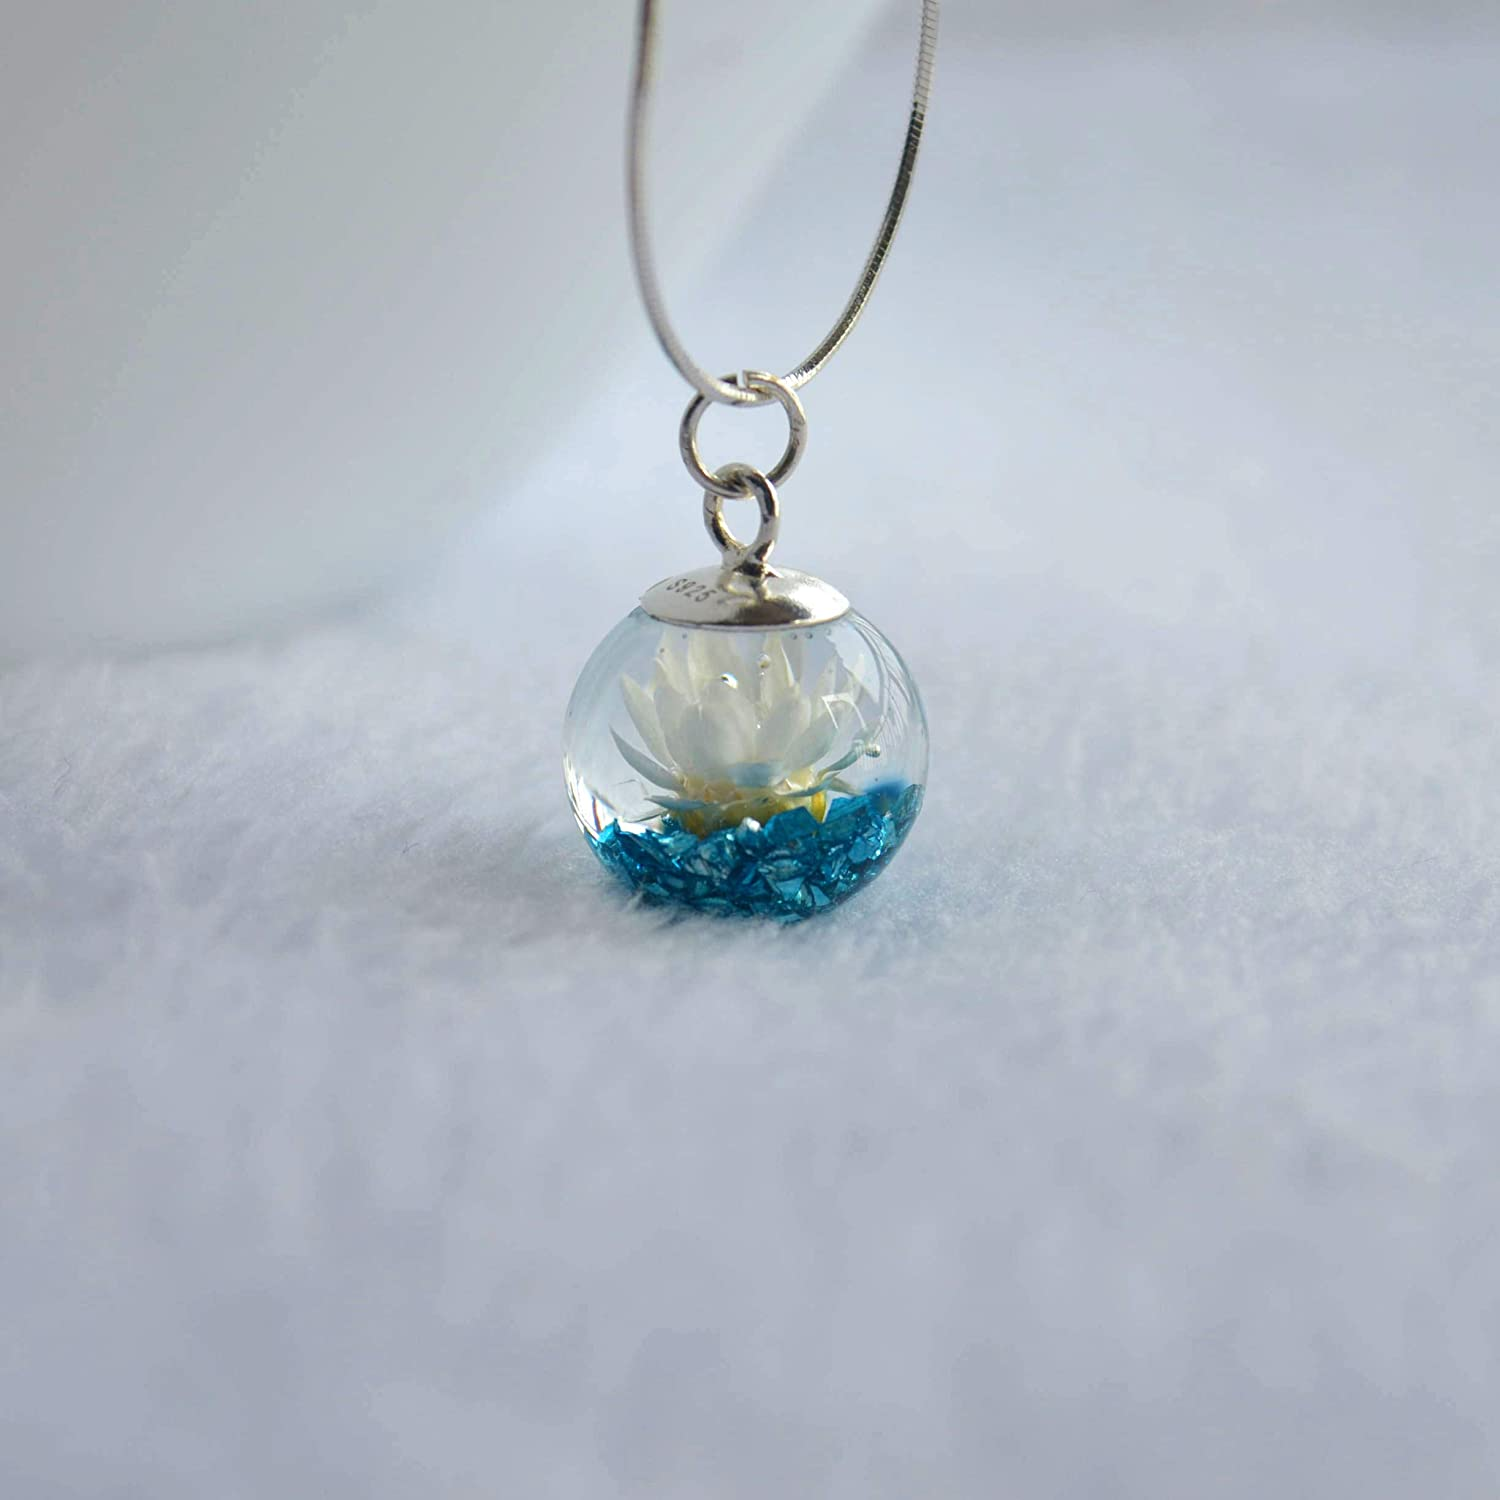 Daisy Real Flower Blue Treasure Island Mineral Glass Ball 925 Sterling Silver Snake Chain Necklace 17.7 Length